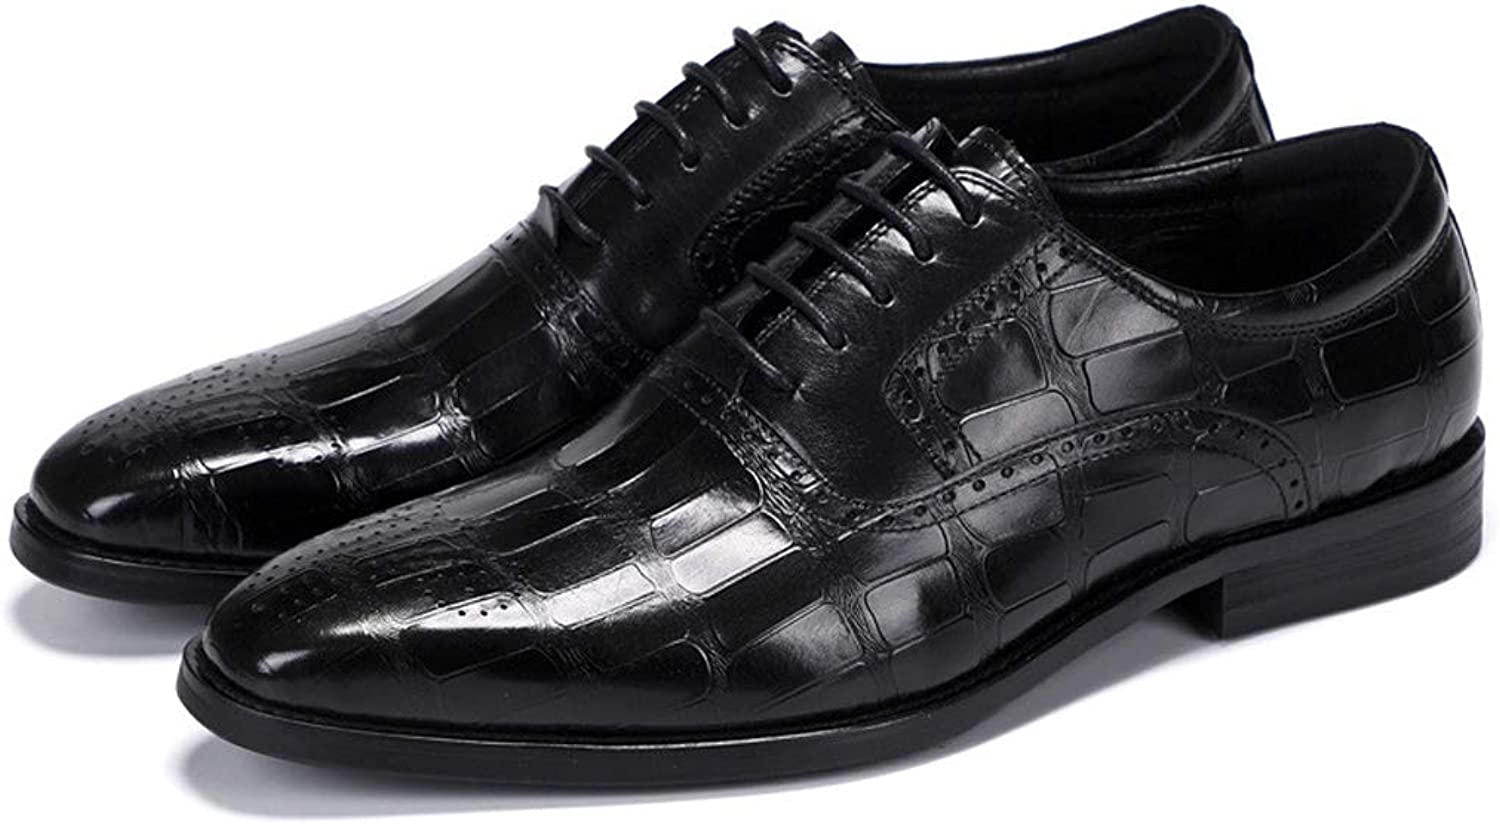 Men's Leather Oxford shoes, broch Leather shoes, Leather Dress, Wedding Dress, Pointed Men's shoes